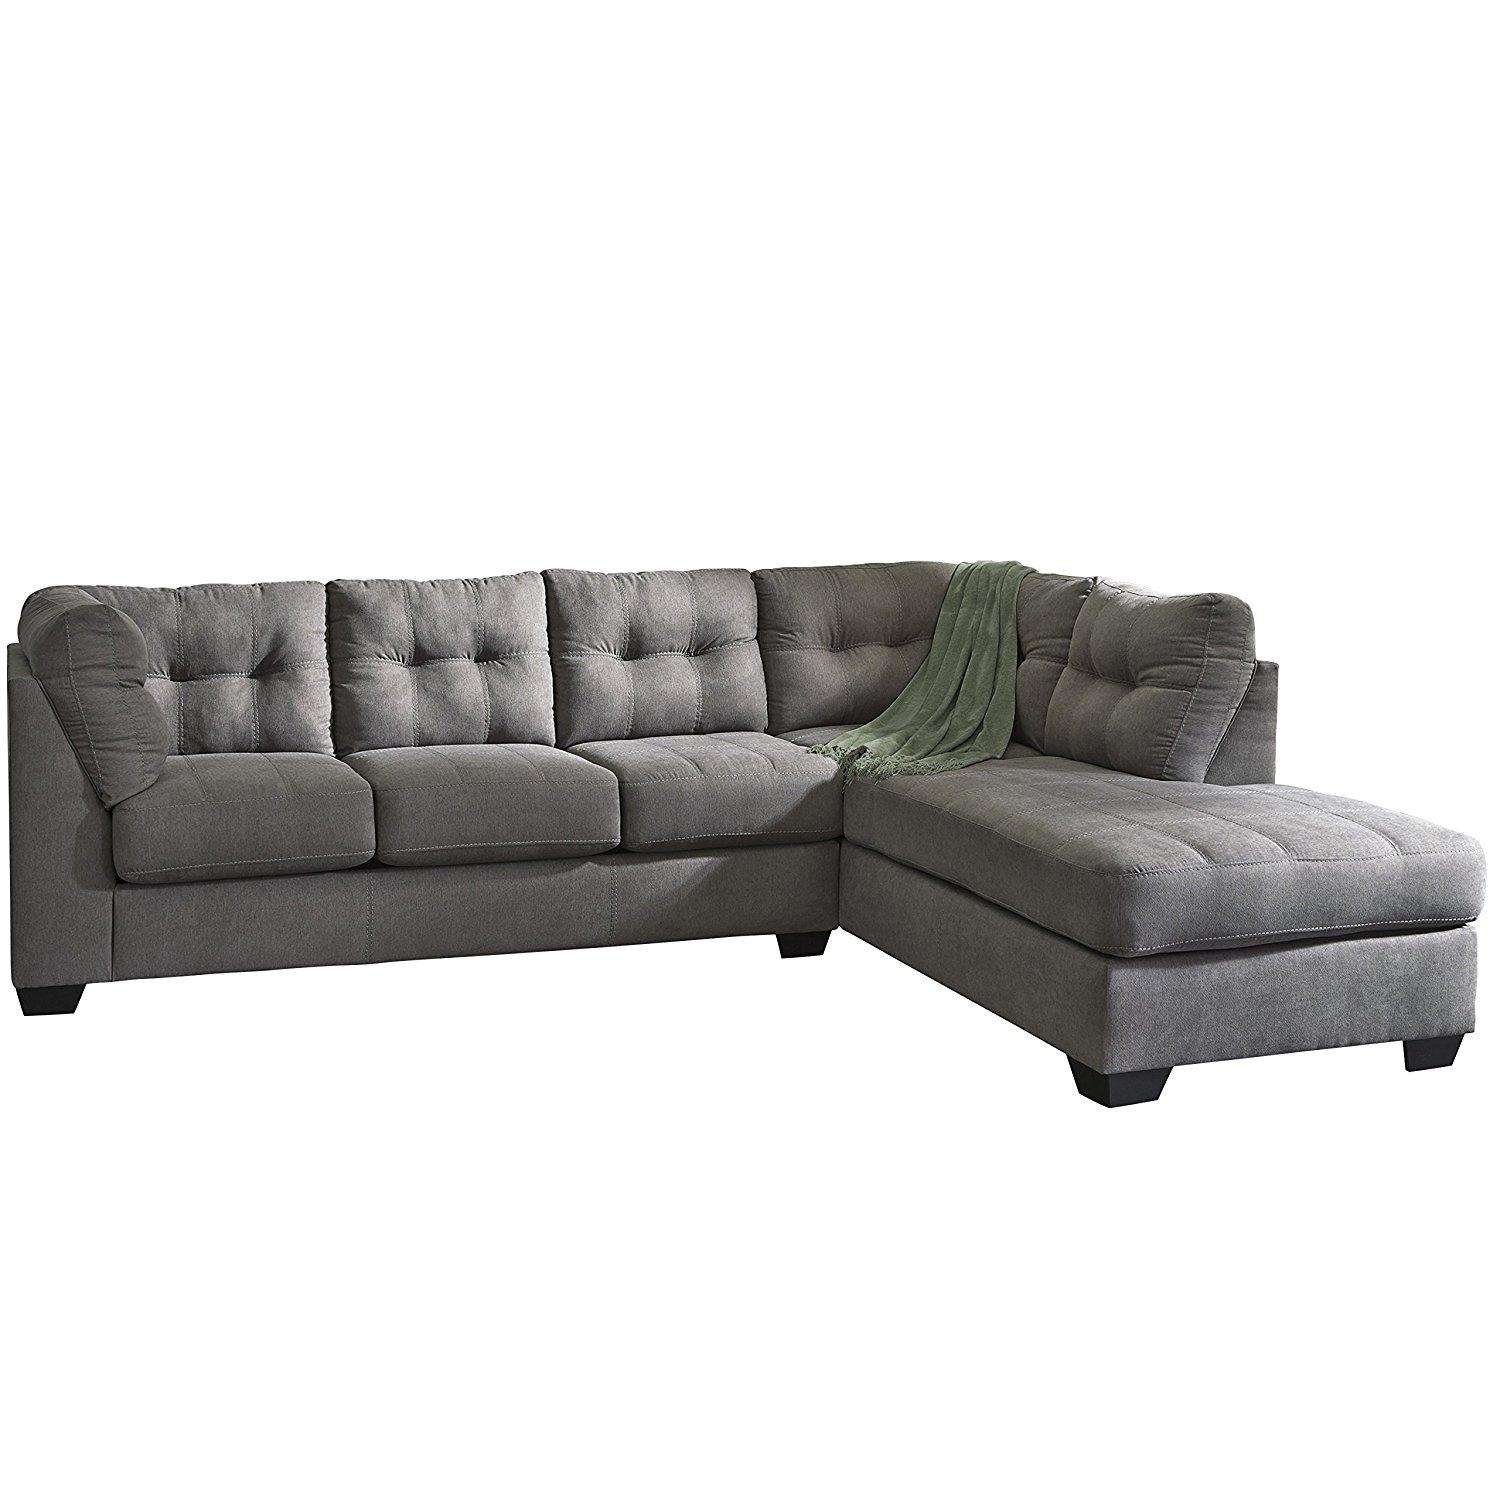 Sofas : Magnificent 2 Piece Sectional Sofa Sectional Couch With Regarding Small 2 Piece Sectional Sofas (Image 18 of 23)